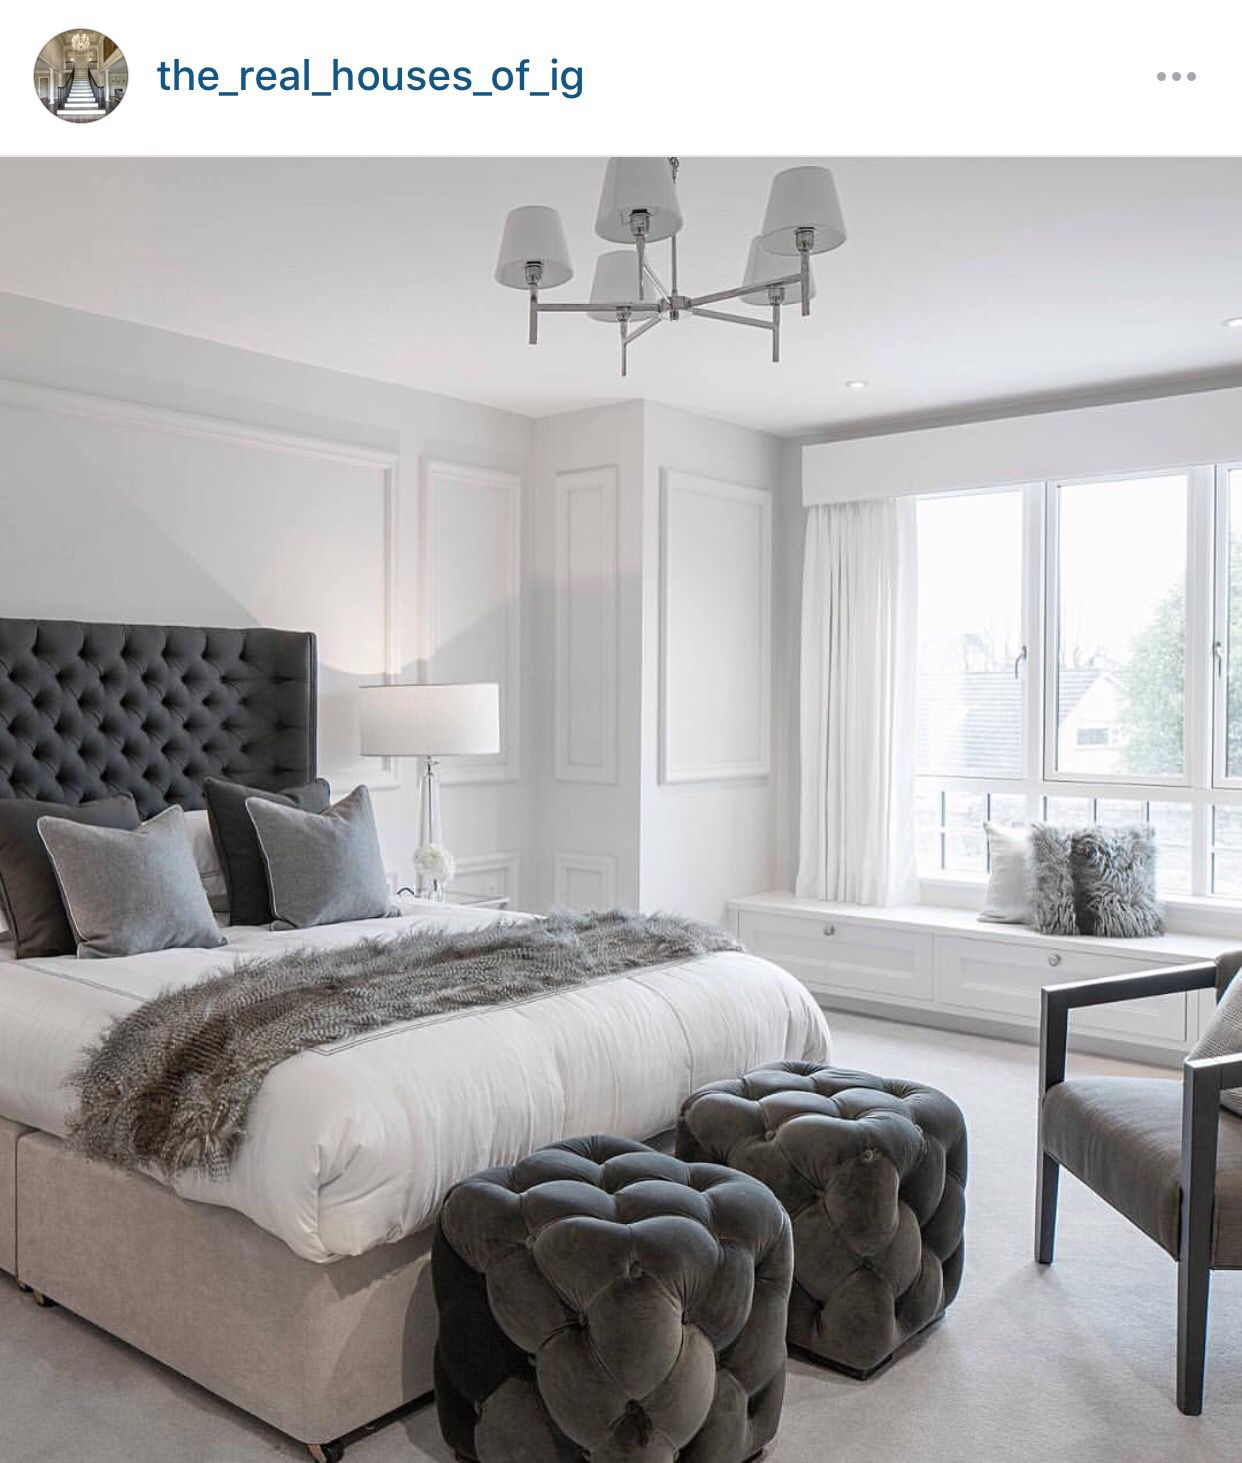 White And Gray Bedroom Theme In 2019 Home Decor Home